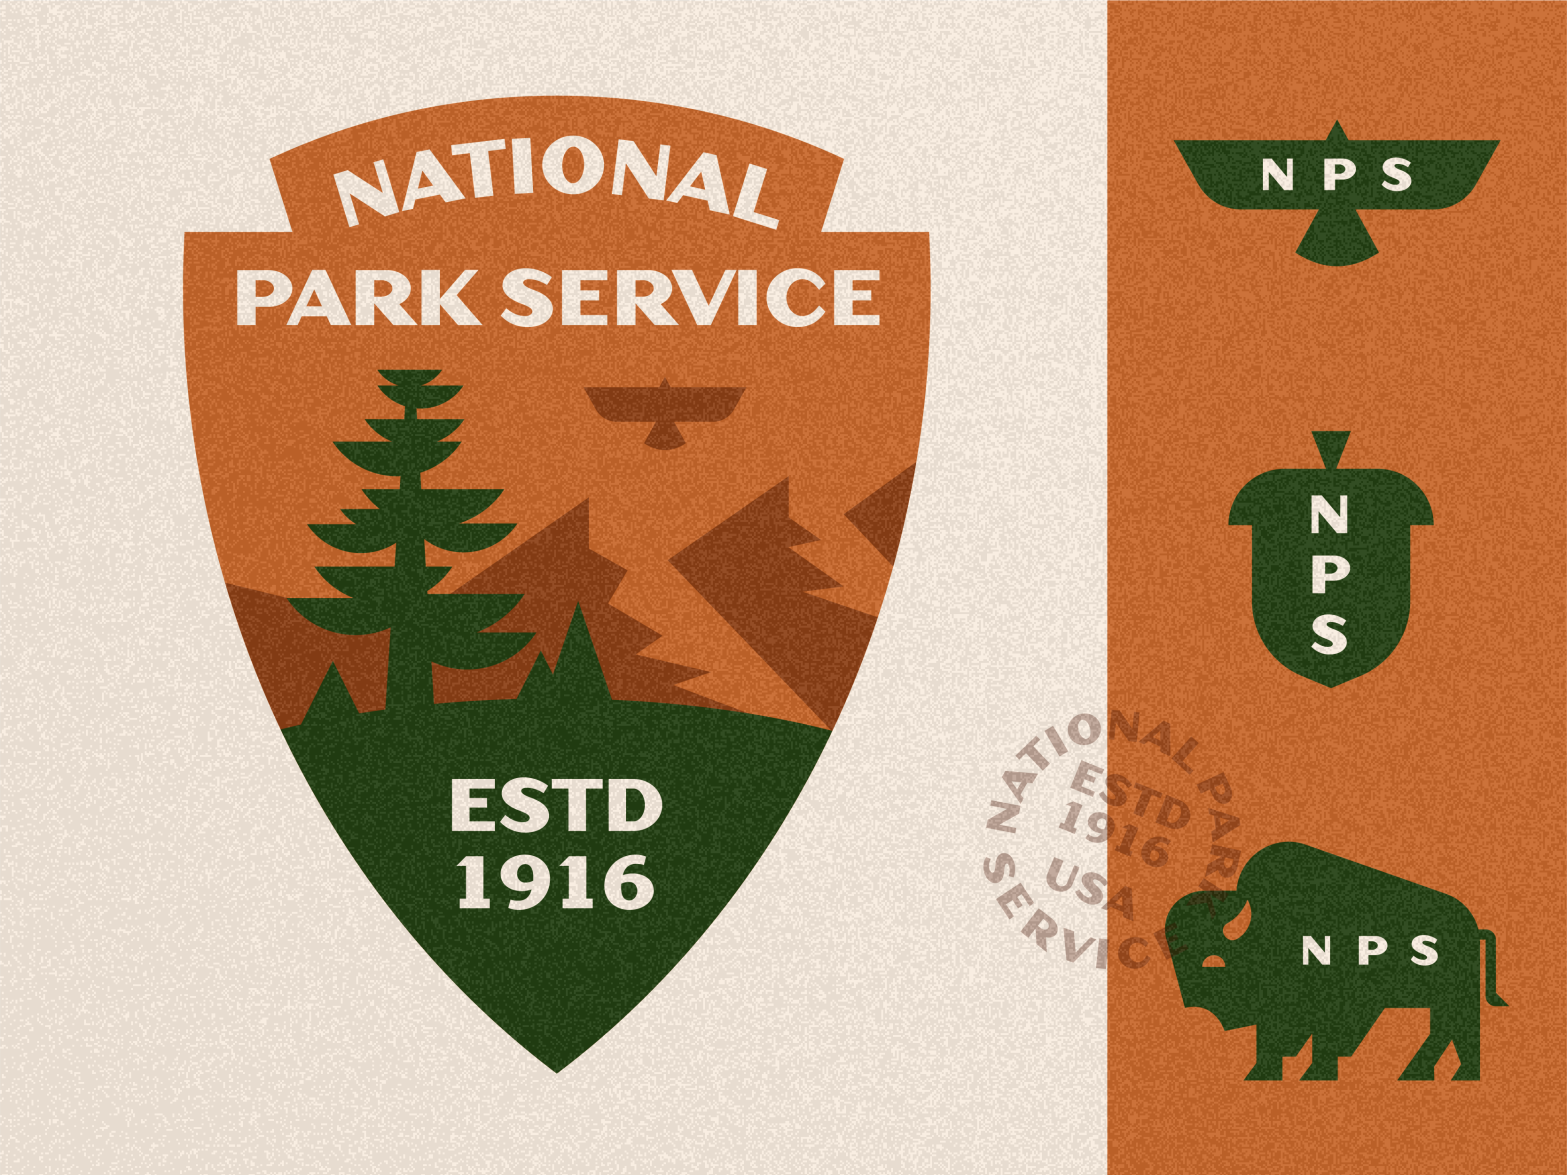 U.S. National Park Service - Badge Redesign